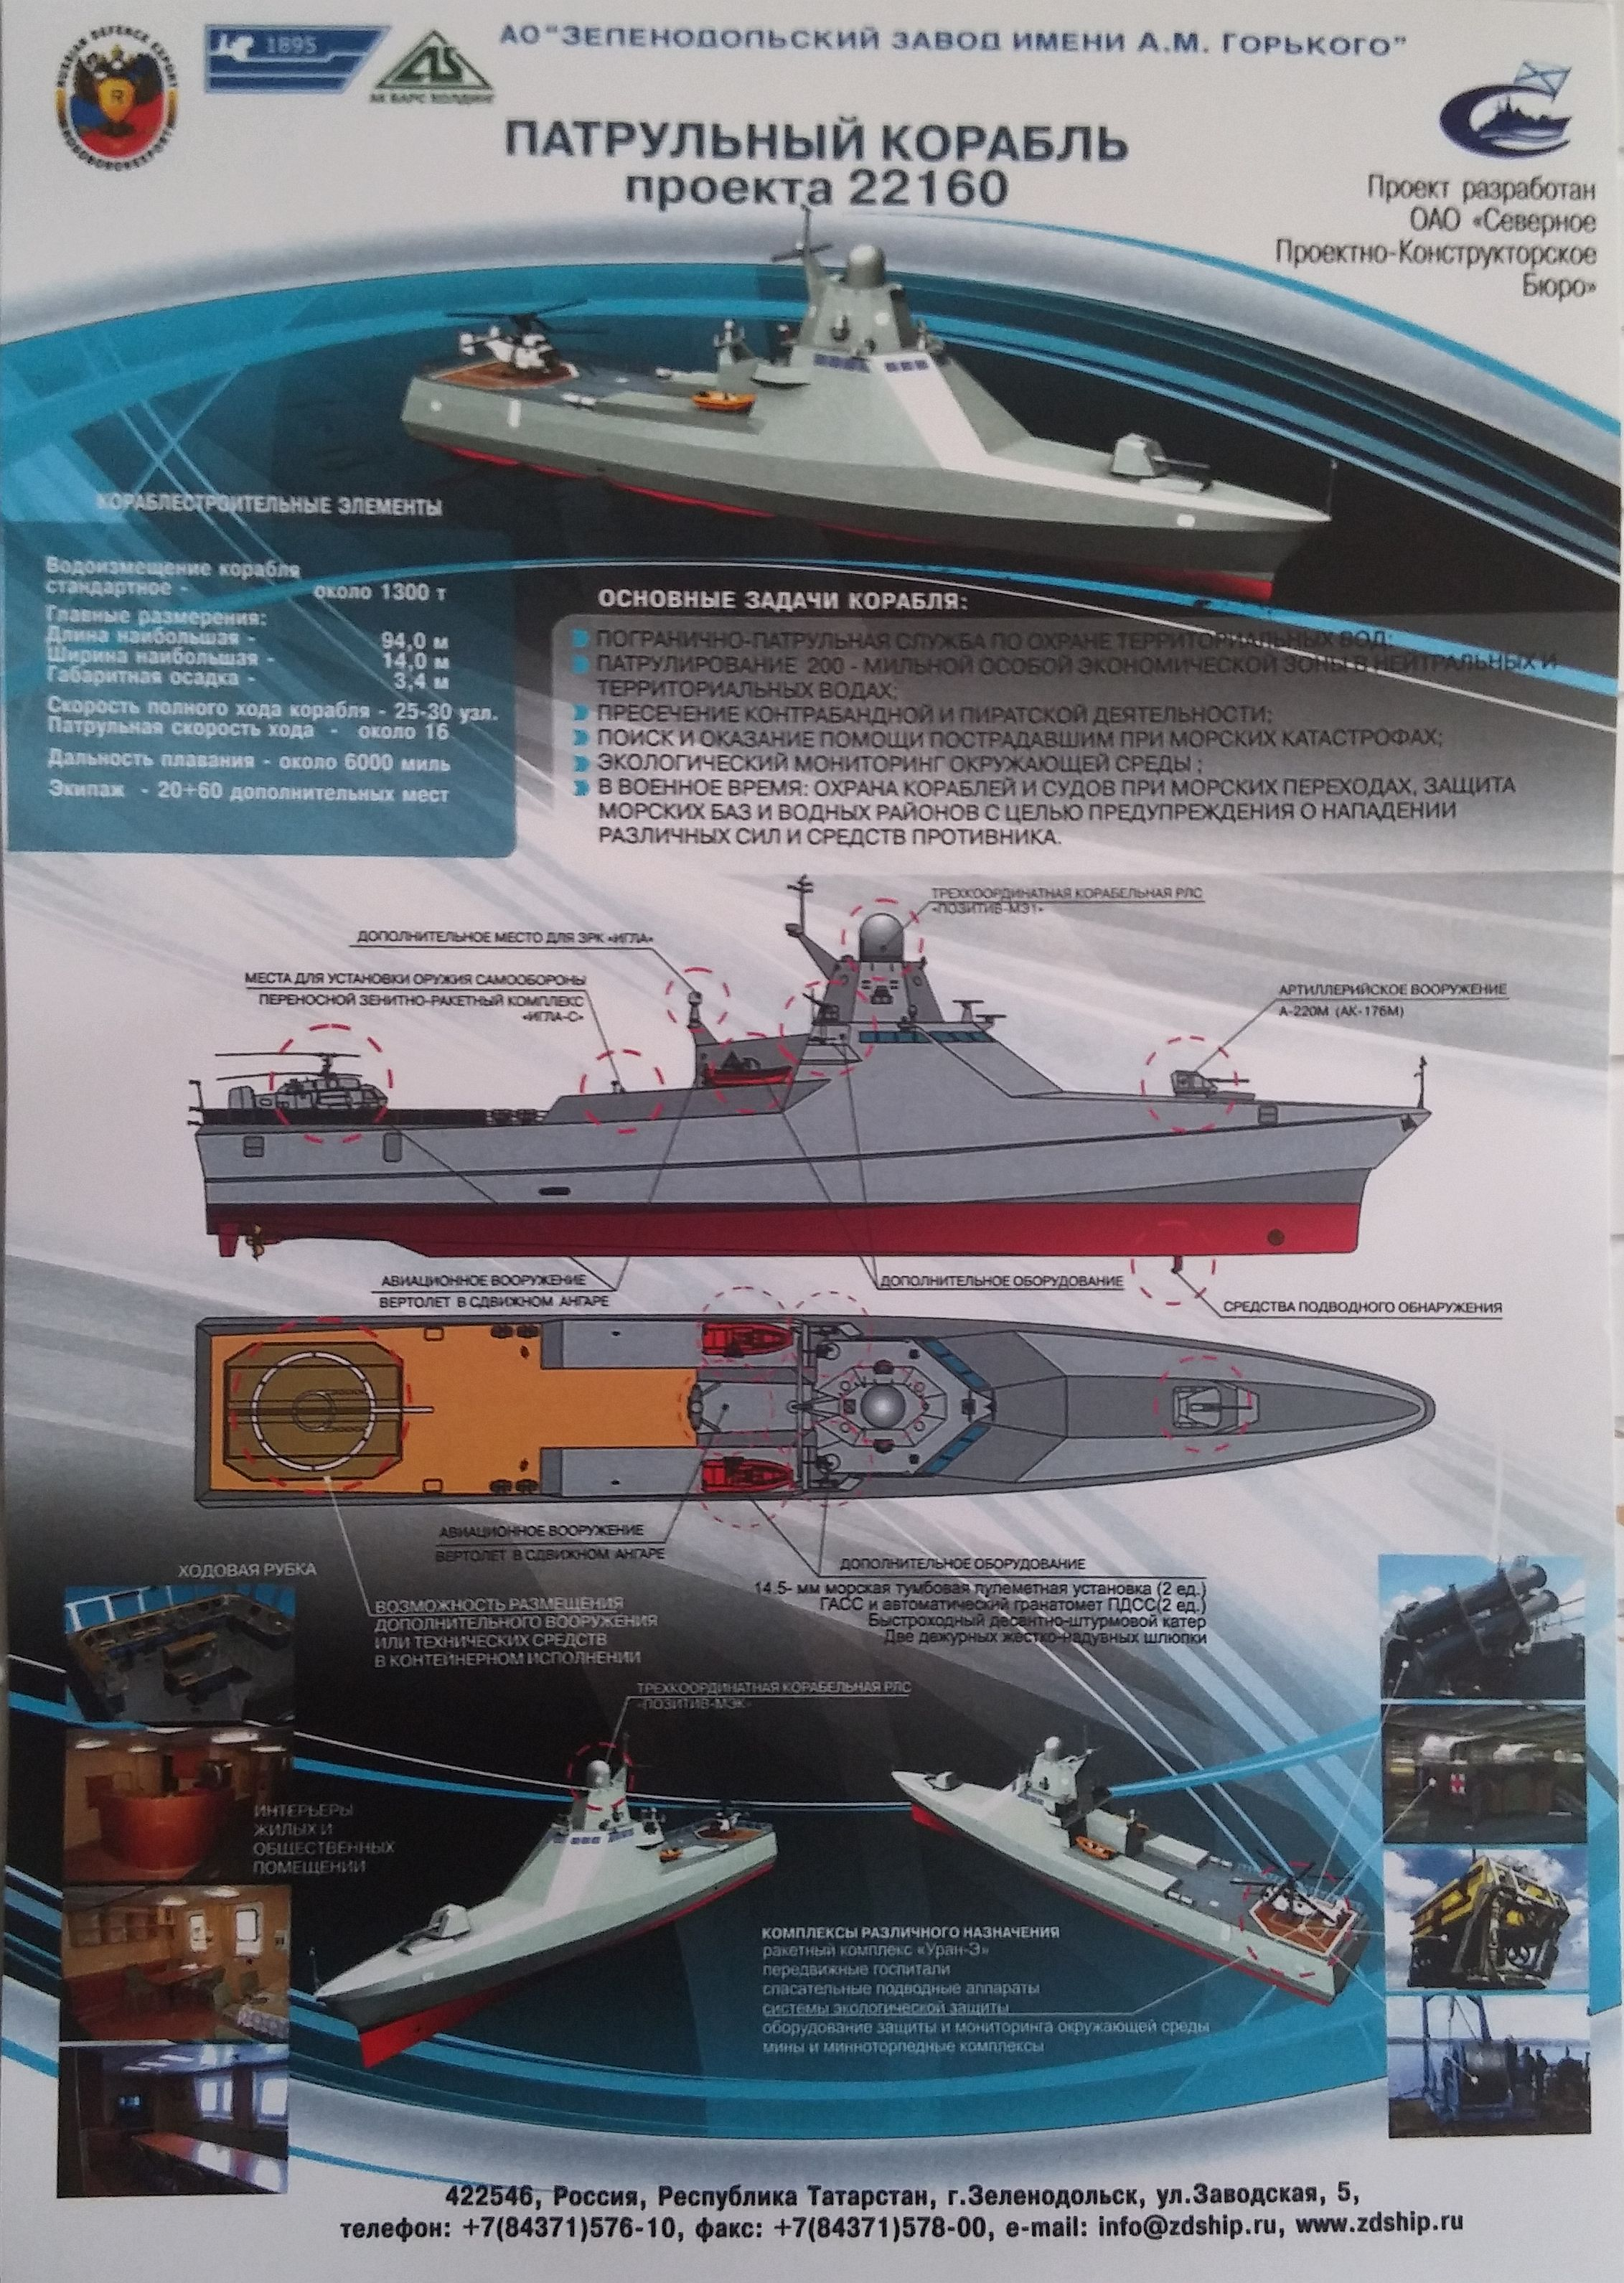 Project 22160 Bykov-class patrol ship - Page 4 12-4288208-6